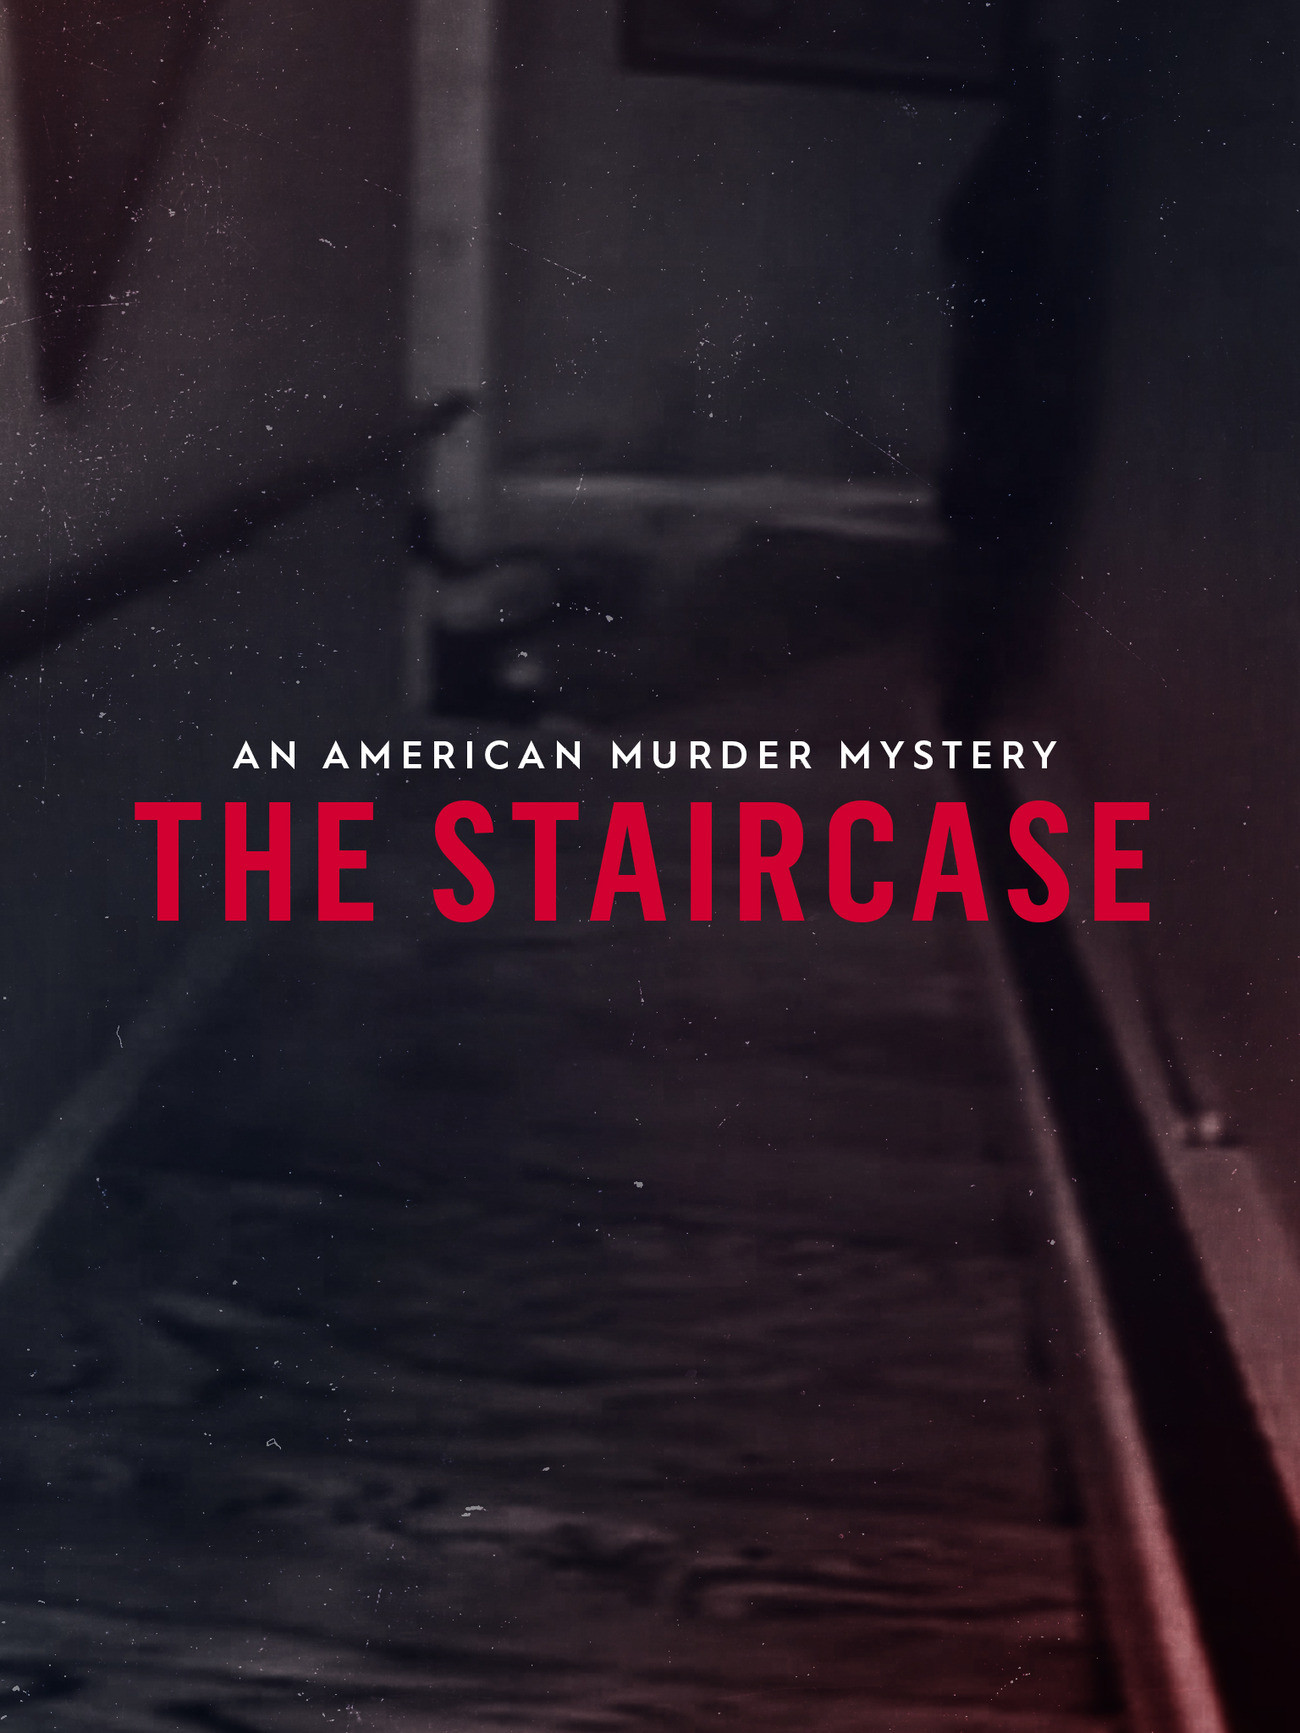 Best ideas about The Staircase Episodes . Save or Pin An American Murder Mystery The Staircase TV Show News Now.